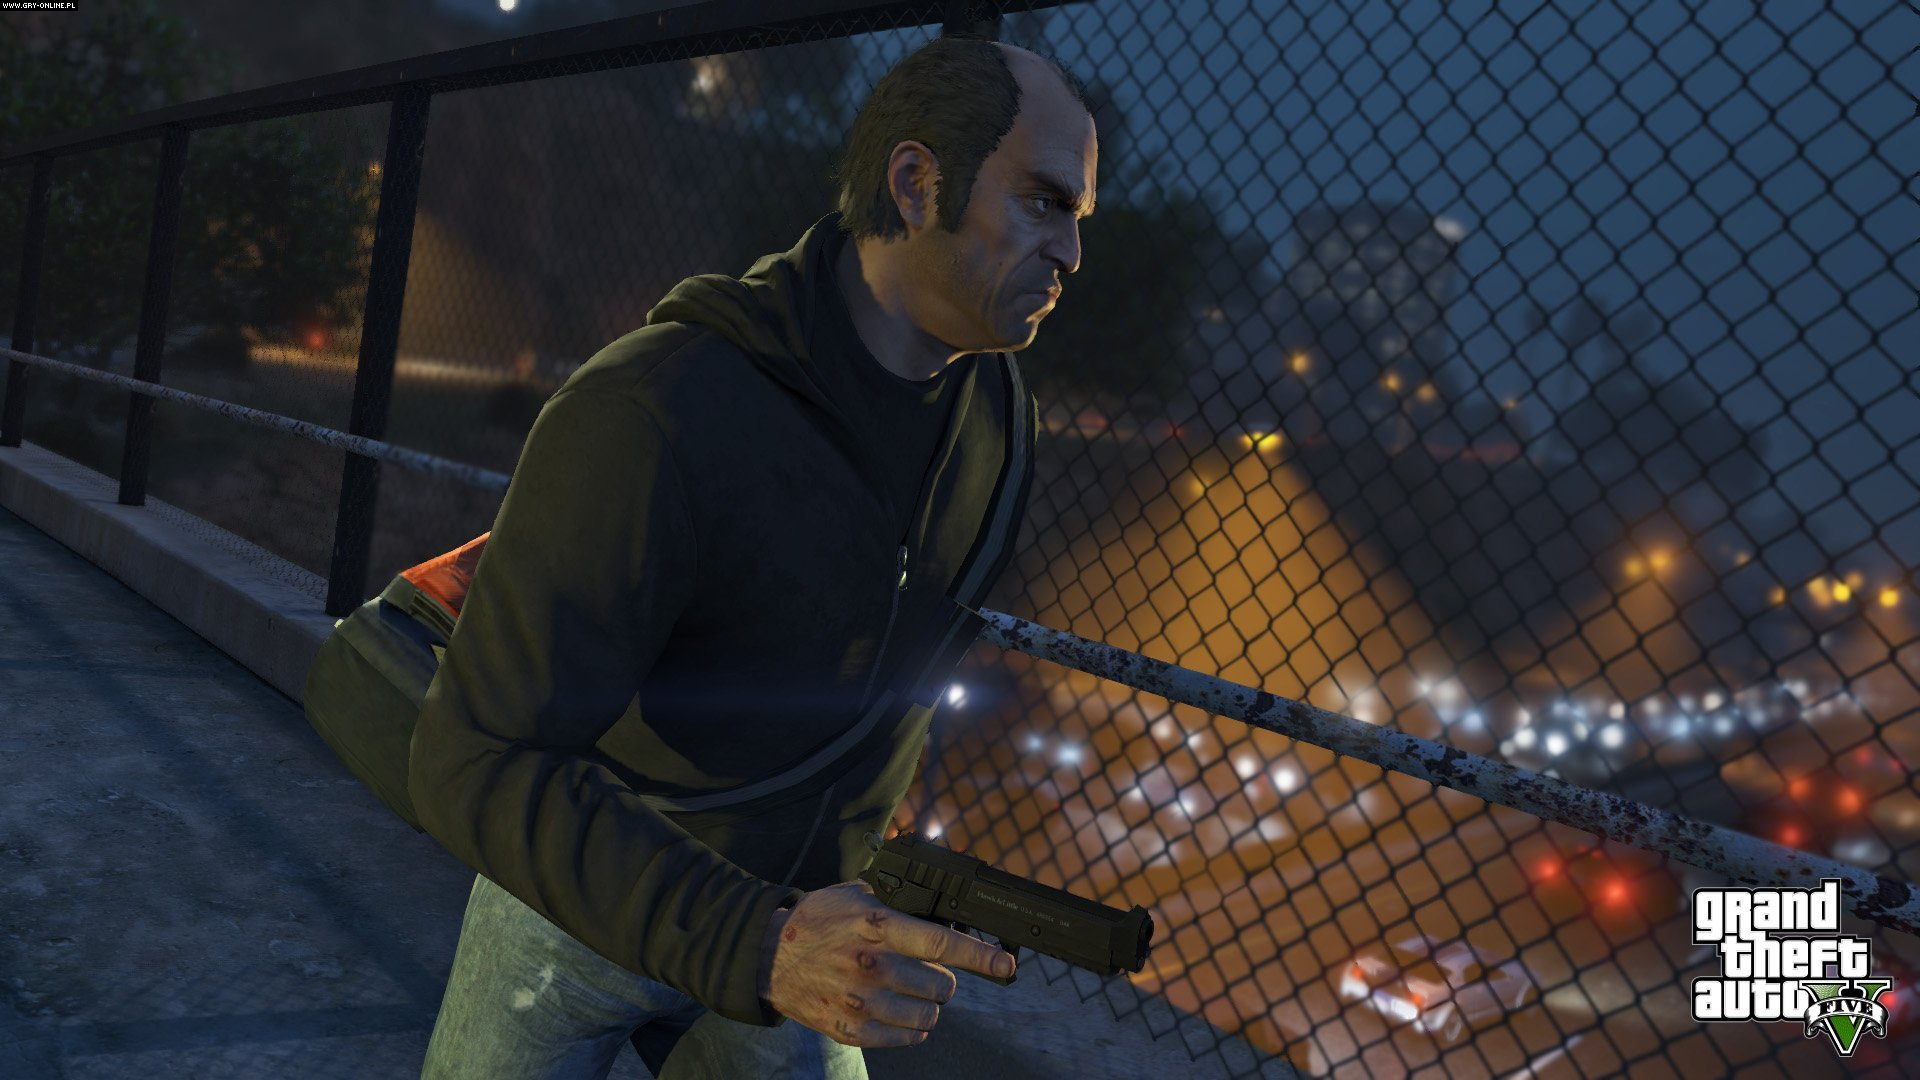 Grand Theft Auto V PC, PS4, XONE Gry Screen 157/396, Rockstar Games